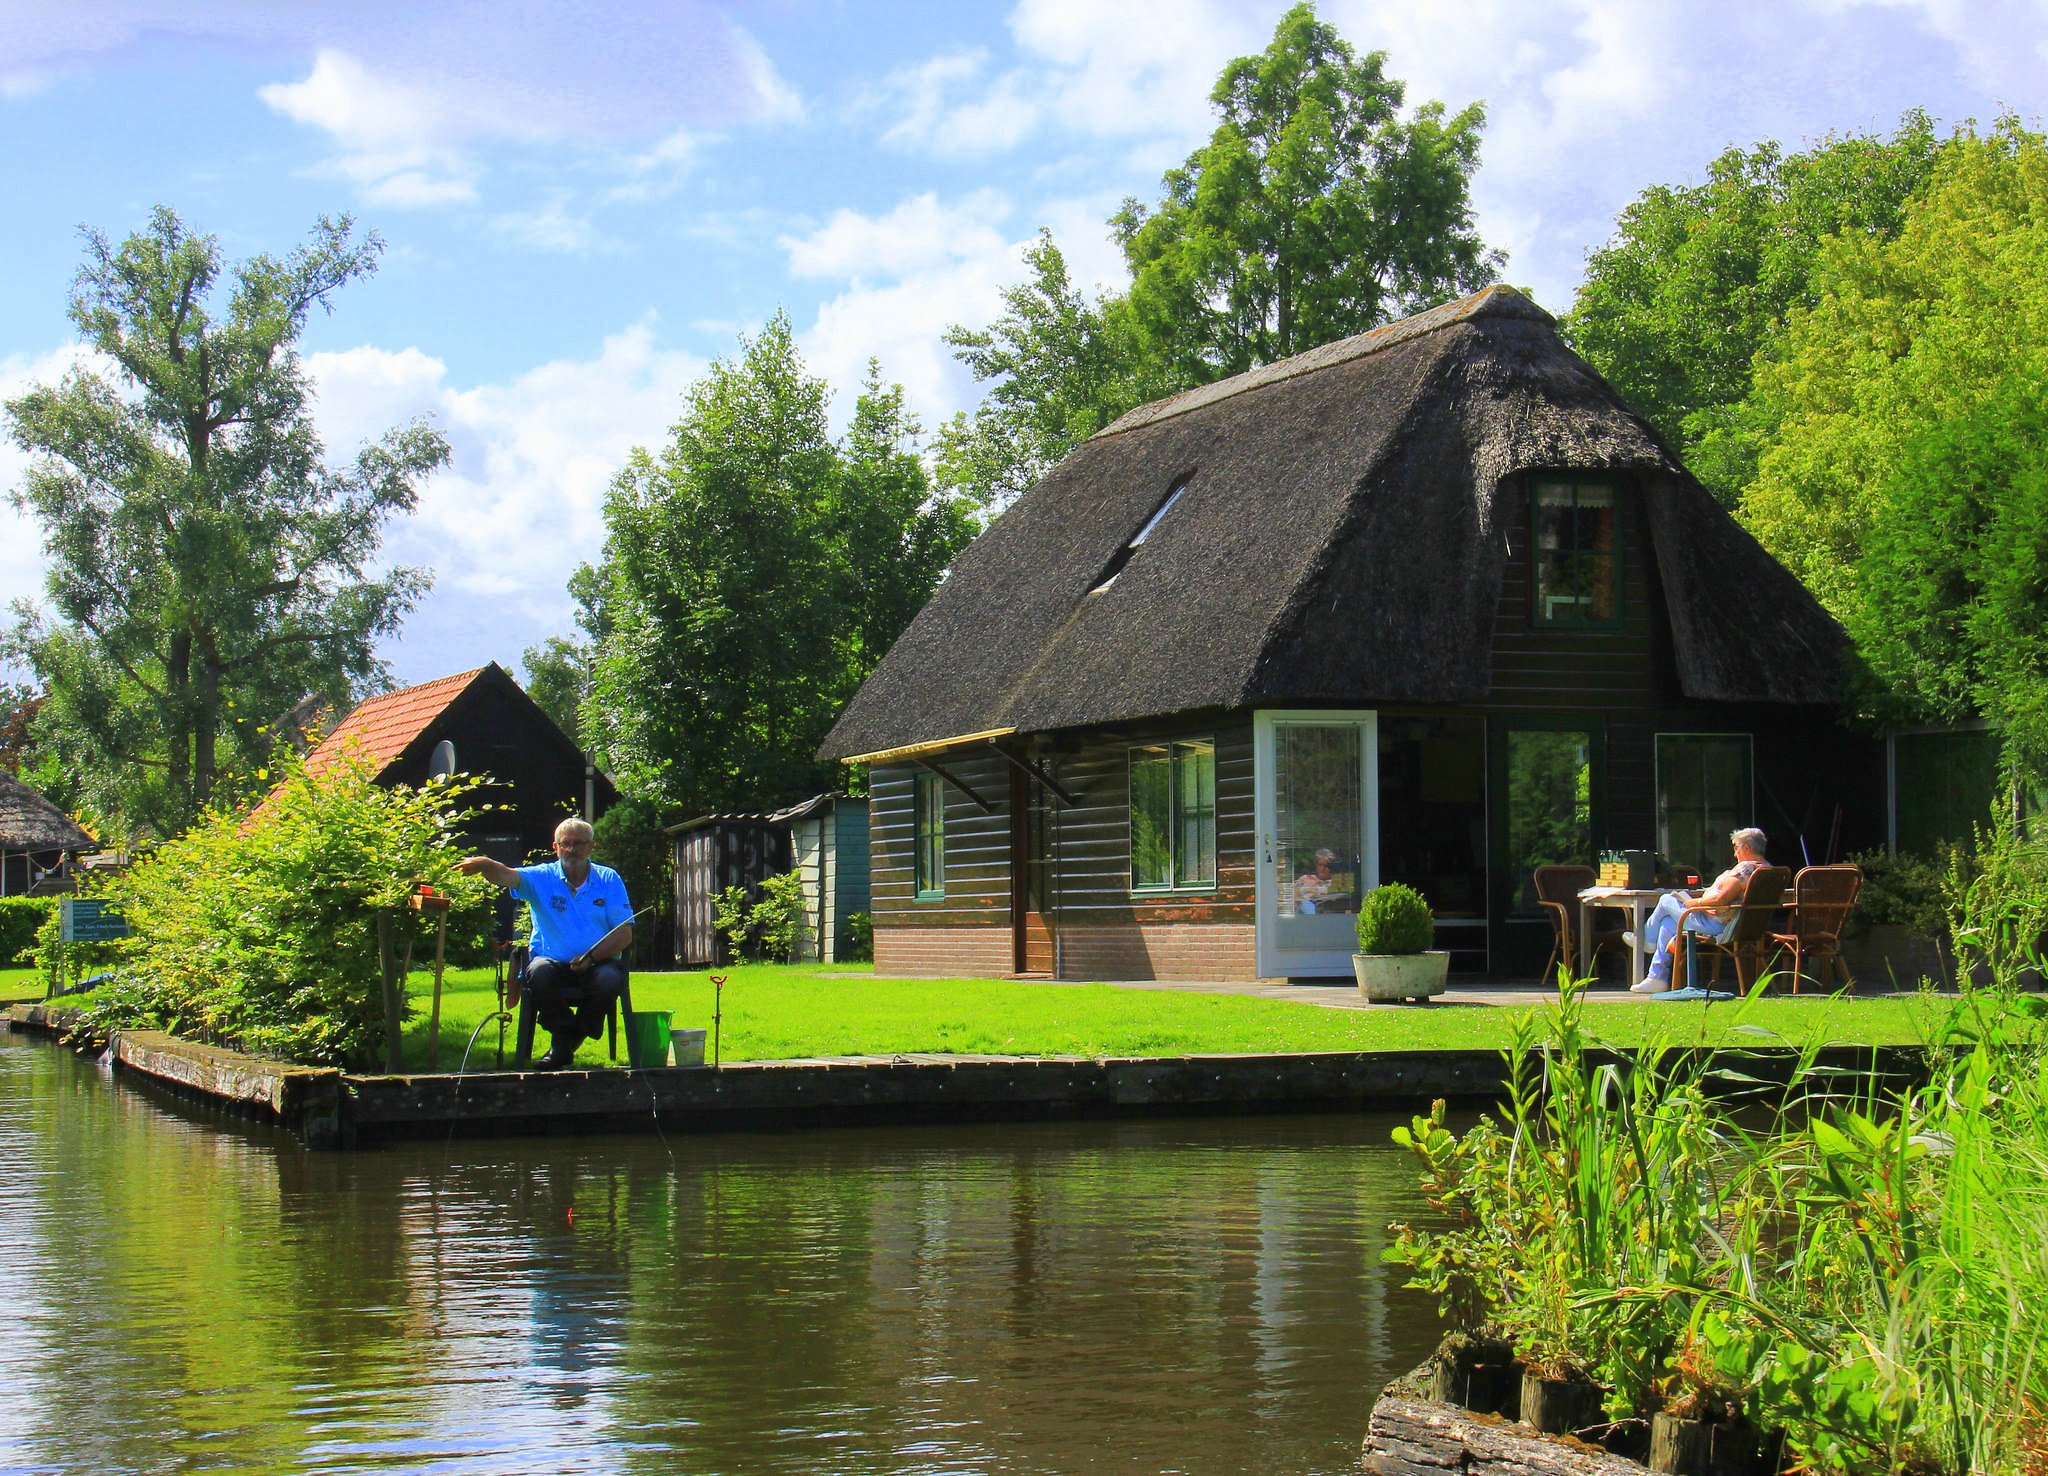 The houses of Giethoorn are built on small slivers of land